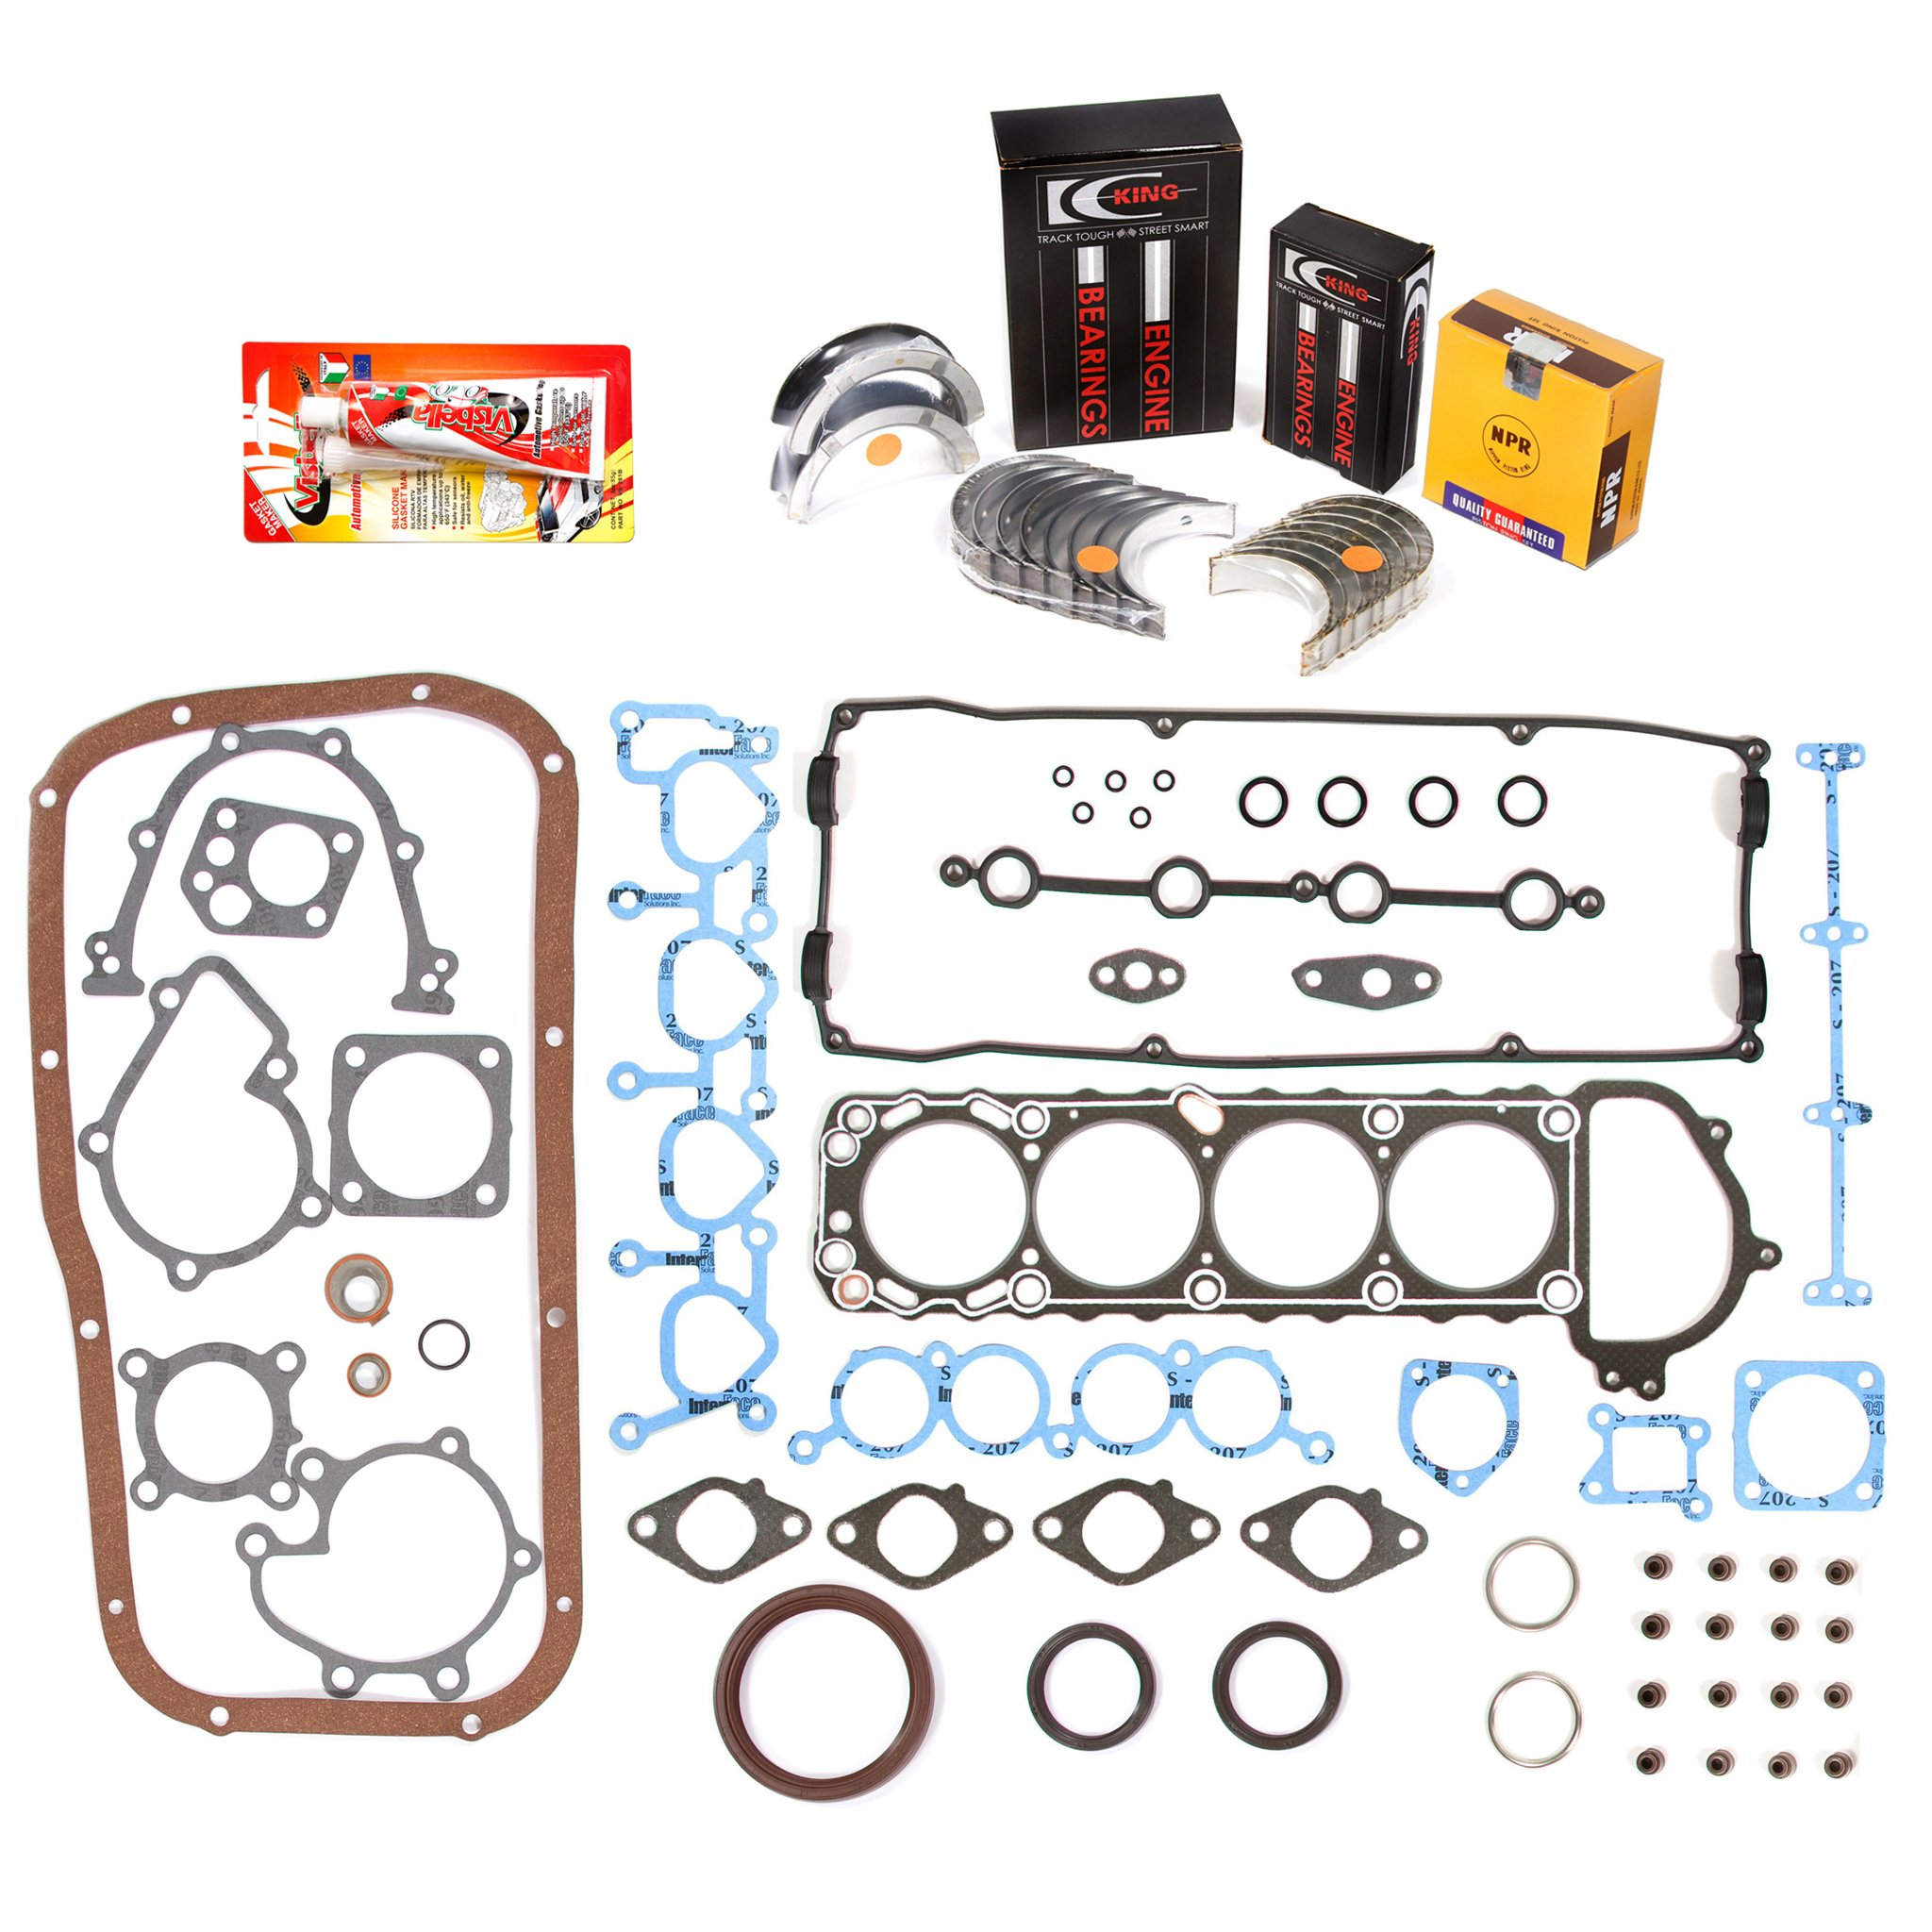 Domestic Gaskets Engine Rering Kit FSBRR3003\0\0\0 91-94 Nissan 240SX 2.4 KA24DE Full Gasket Set, Standard Size Main Rod Bearings, Standard Size Piston Rings